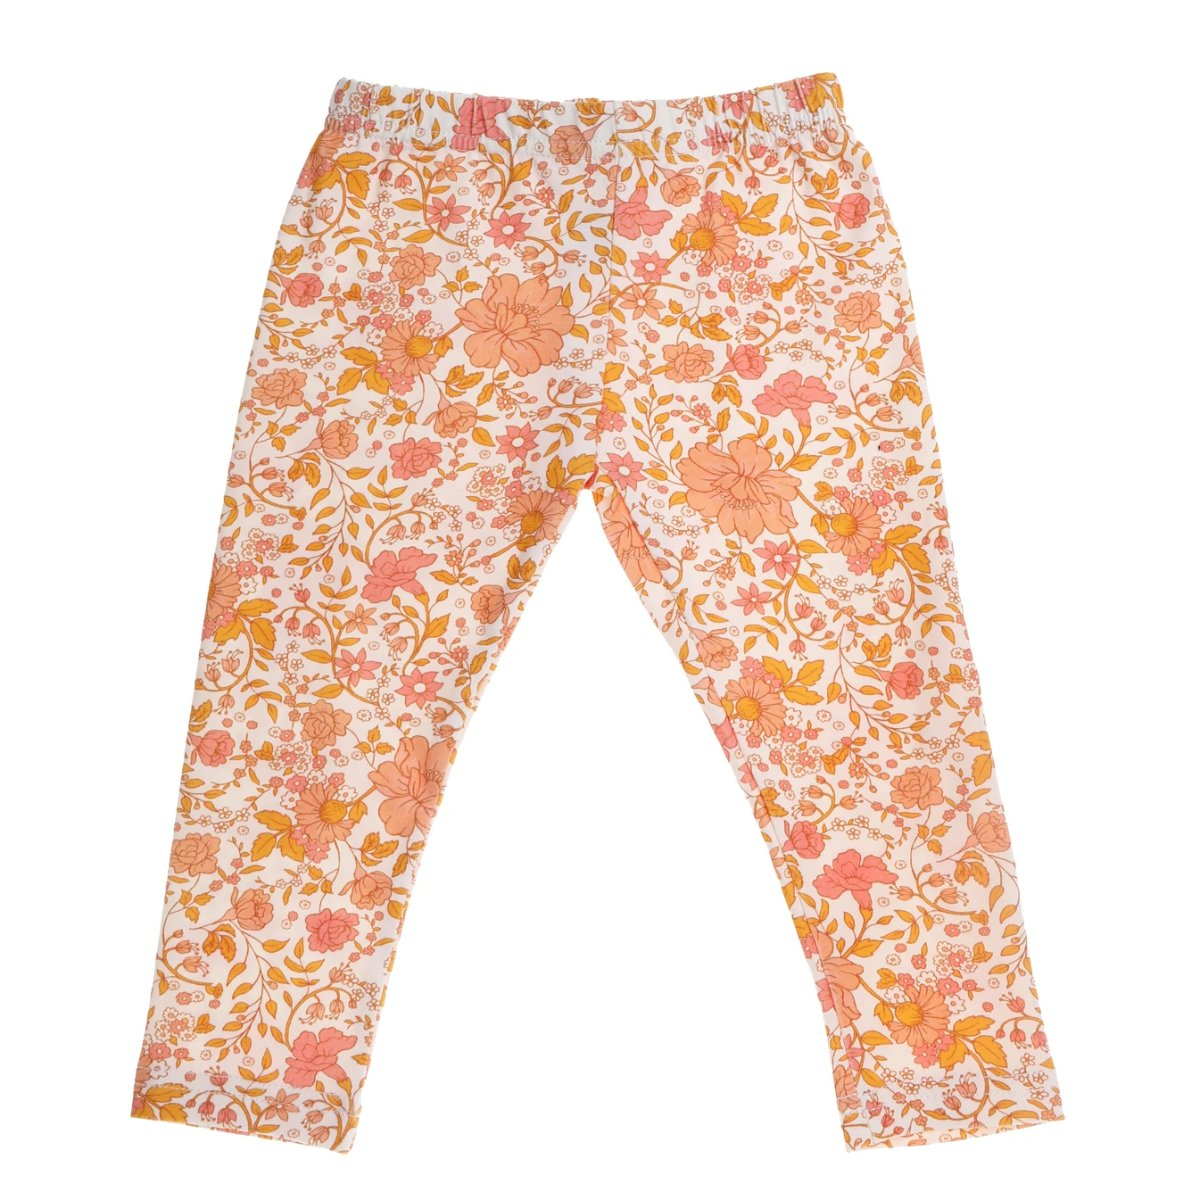 US stockist of Bonnie & Harlo's floral leggings in hues of pink and peach.